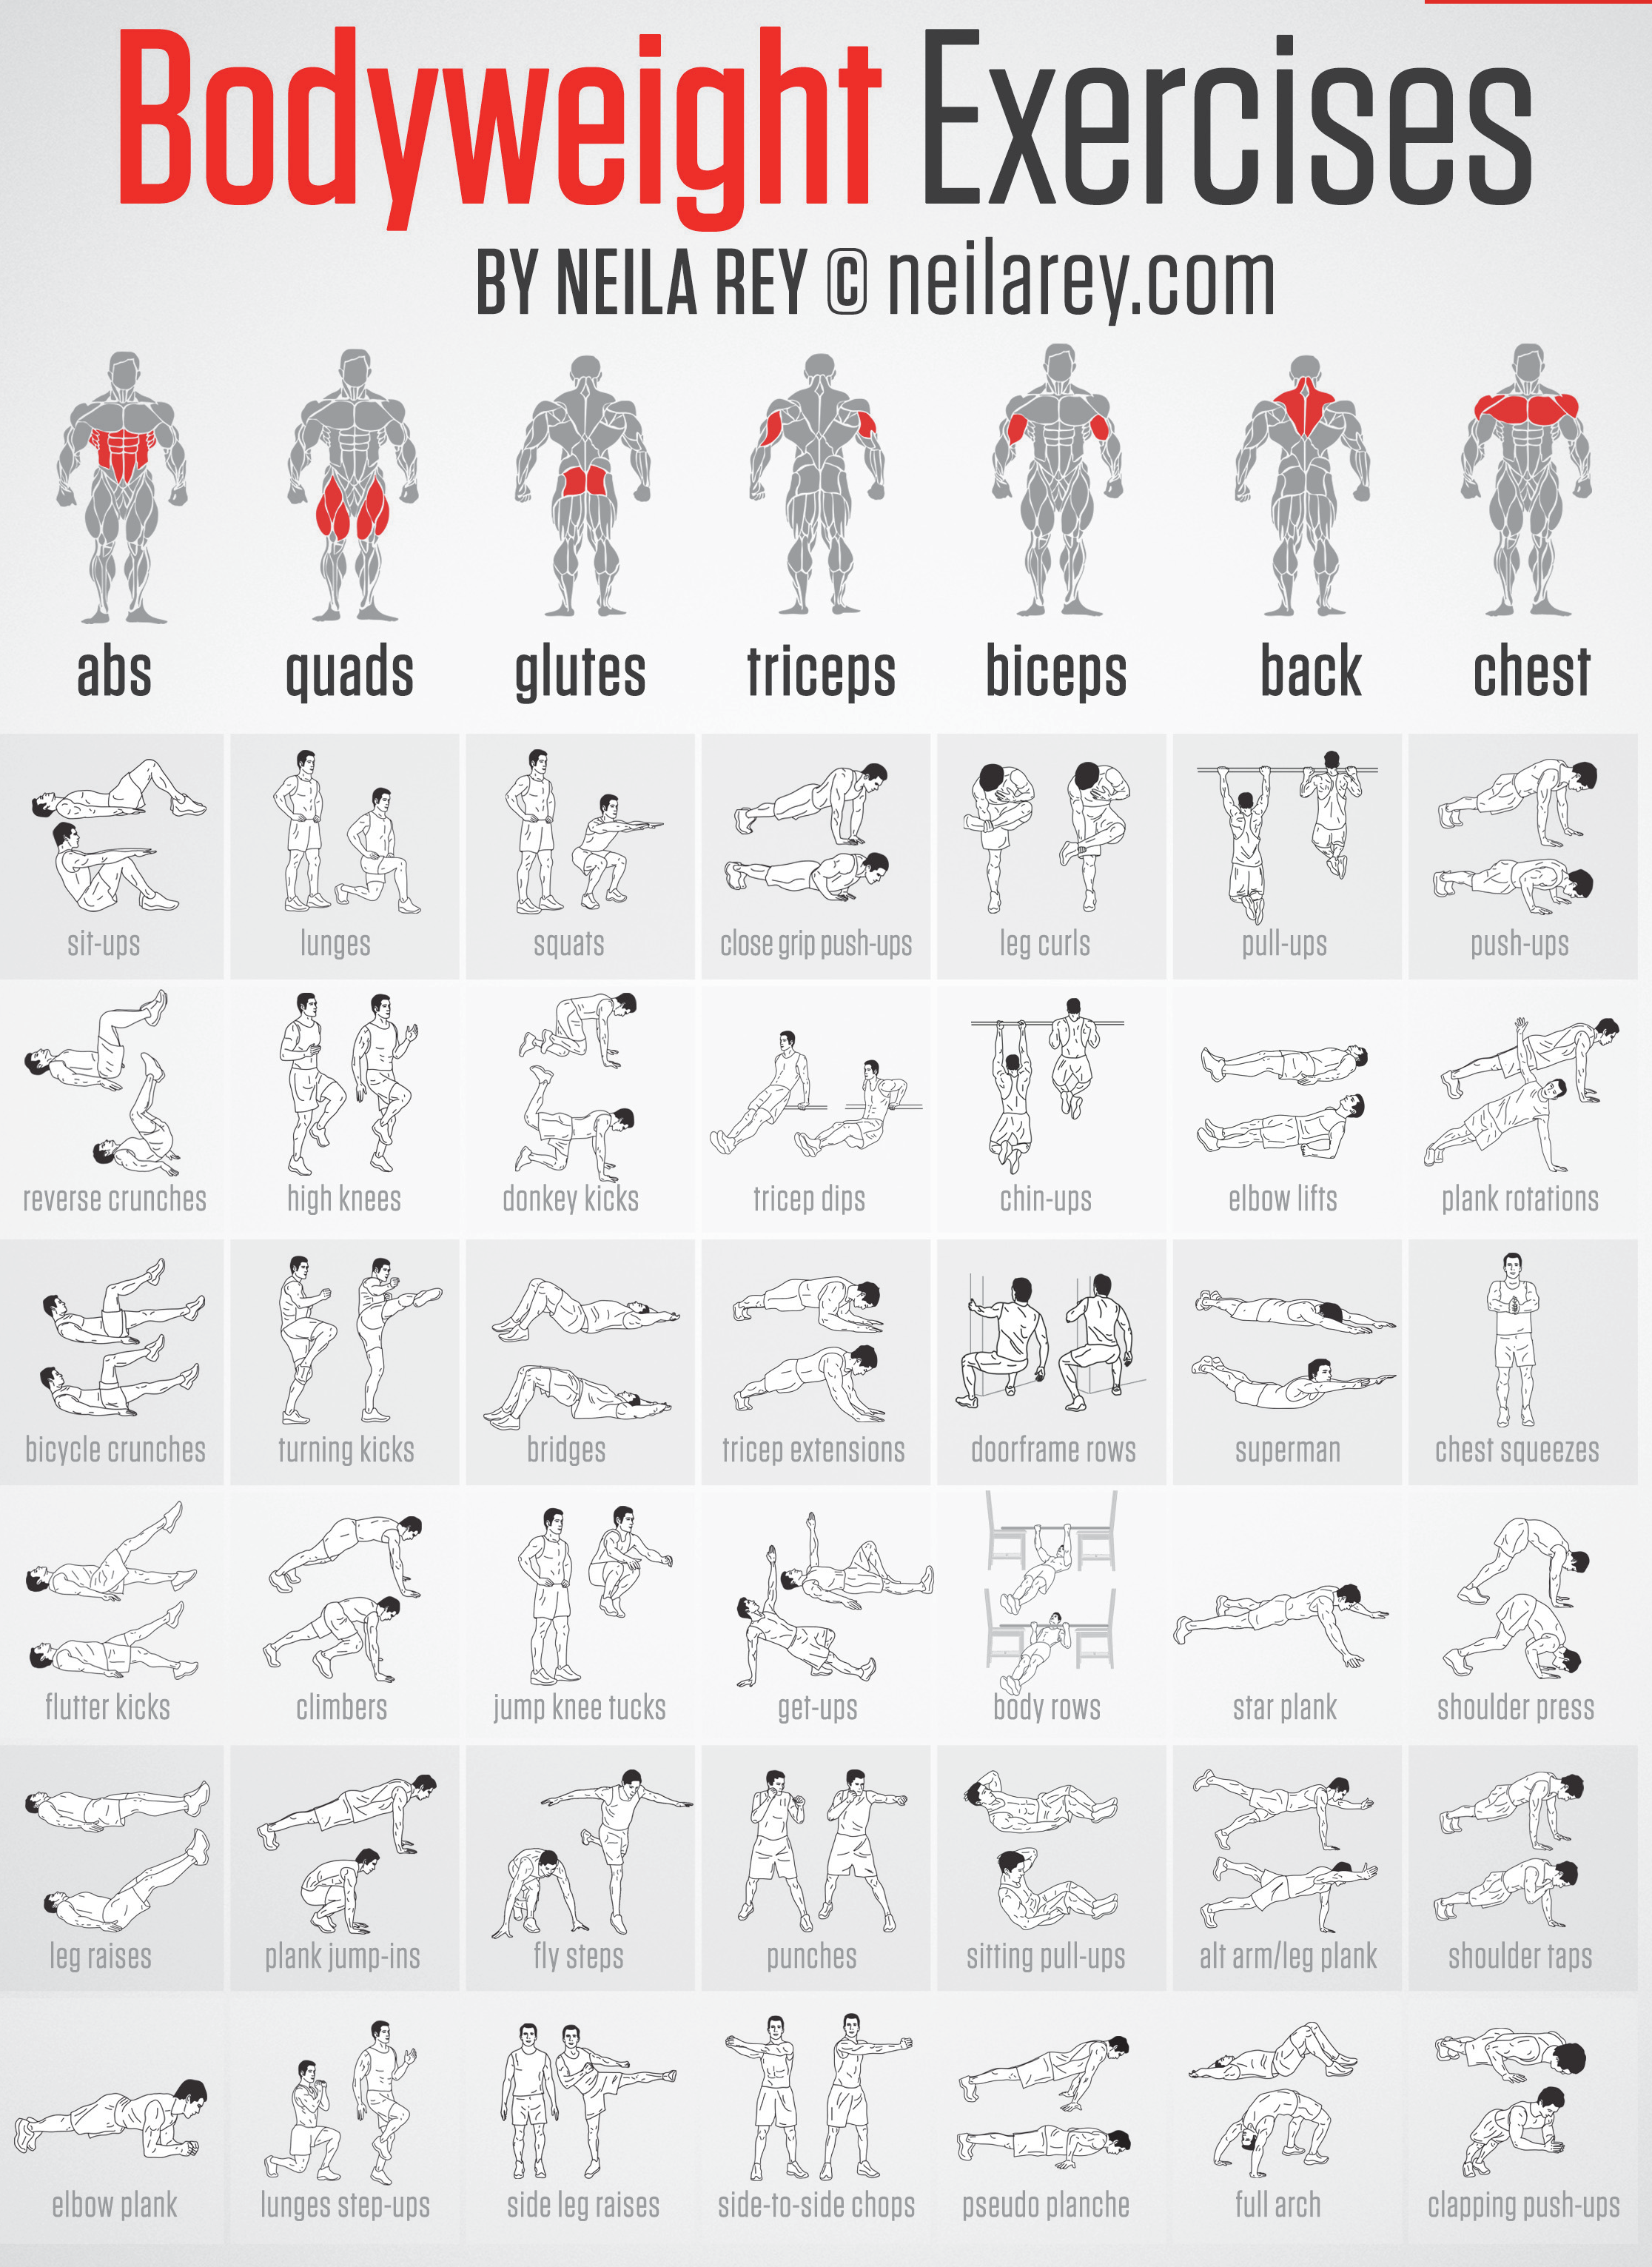 bodyweight workout chart: Bodyweight exercises chart and travel workout cards 64tk tv